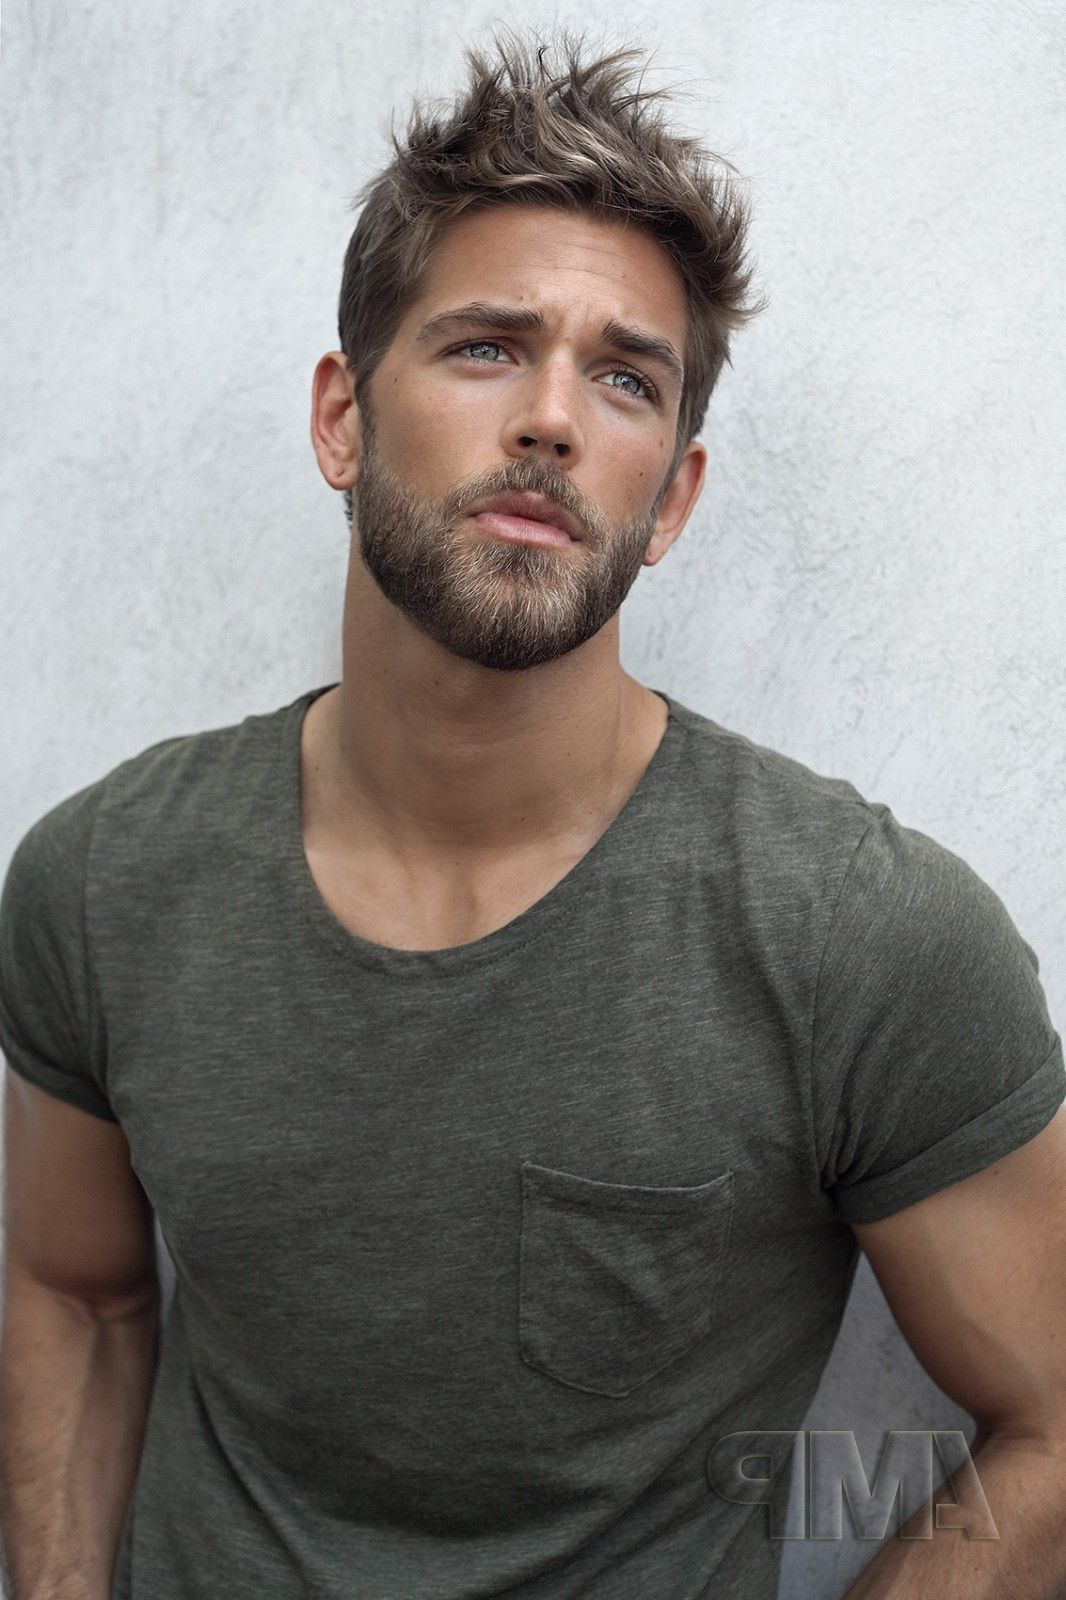 Pma ben dahlhaus hairstyle pinterest haircuts handsome and